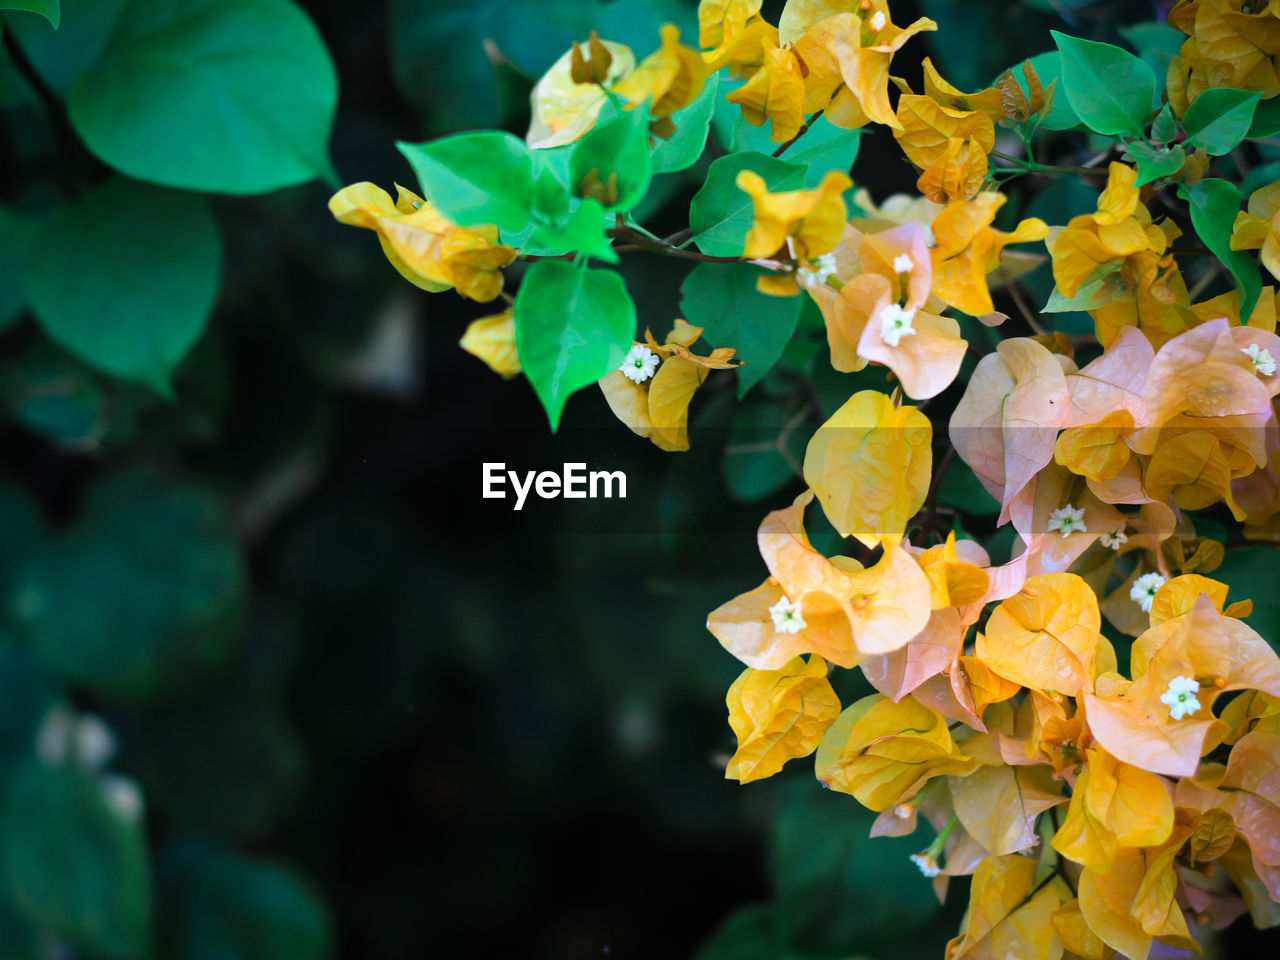 growth, plant, beauty in nature, leaf, plant part, flowering plant, vulnerability, flower, close-up, fragility, freshness, petal, yellow, day, nature, focus on foreground, inflorescence, flower head, no people, green color, outdoors, lantana, natural condition